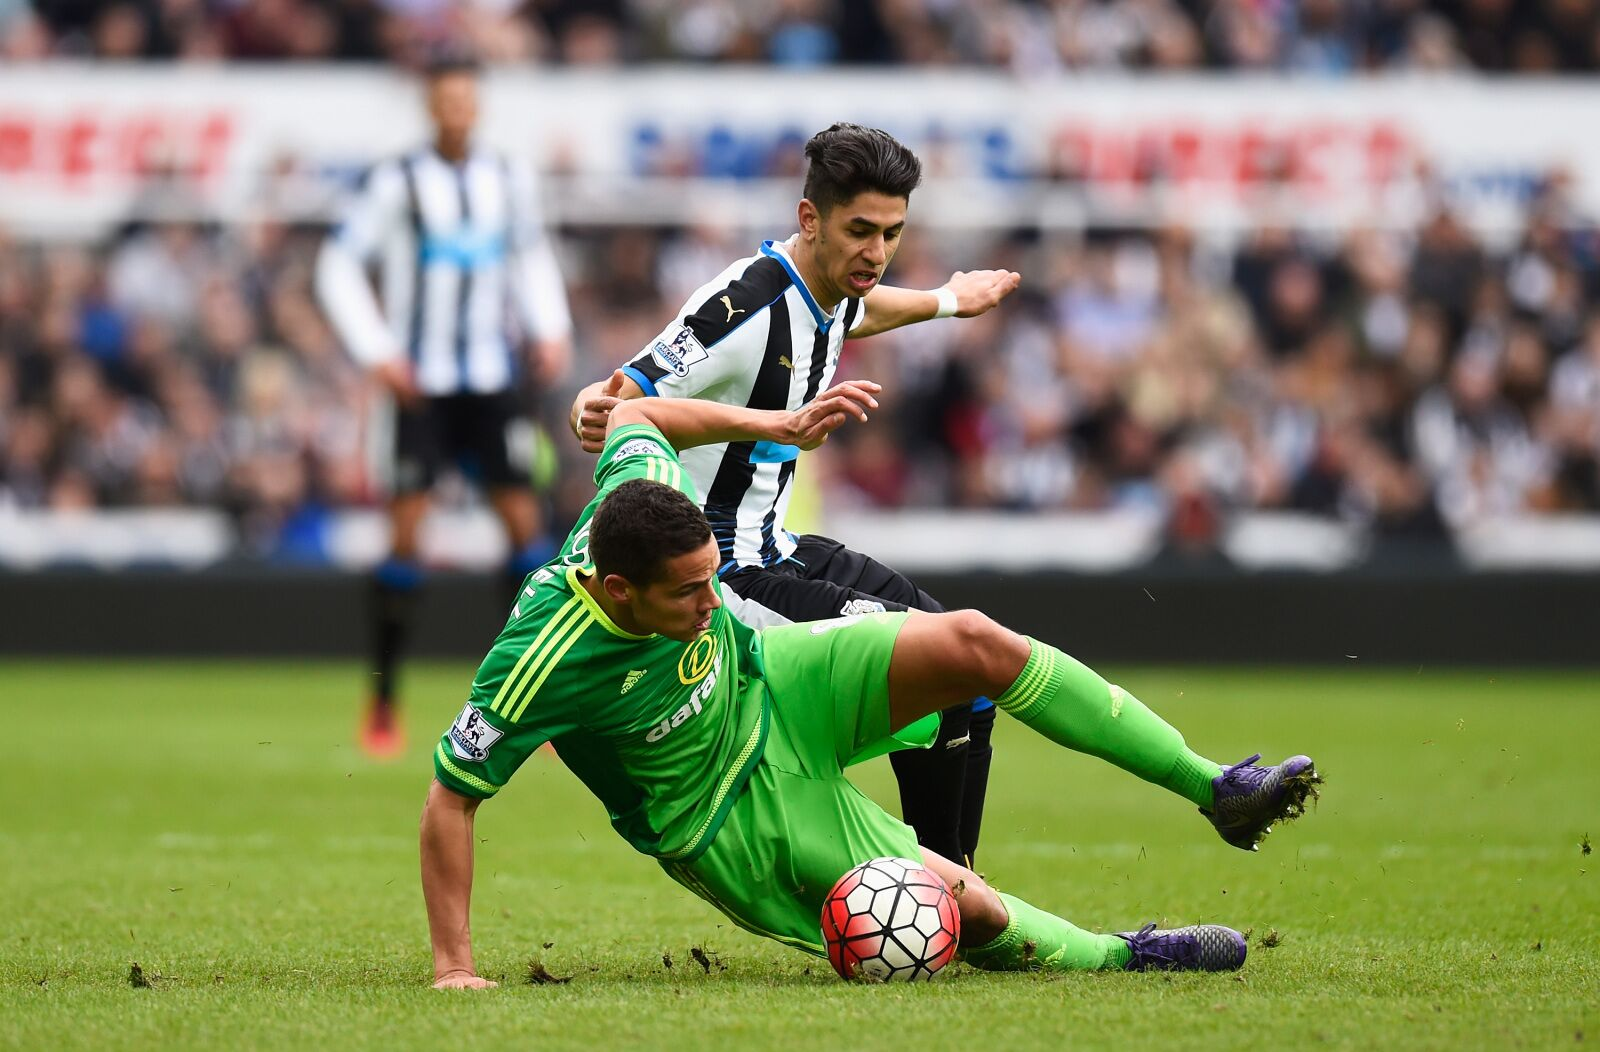 516675234-newcastle-united-v-sunderland-premier-league.jpg